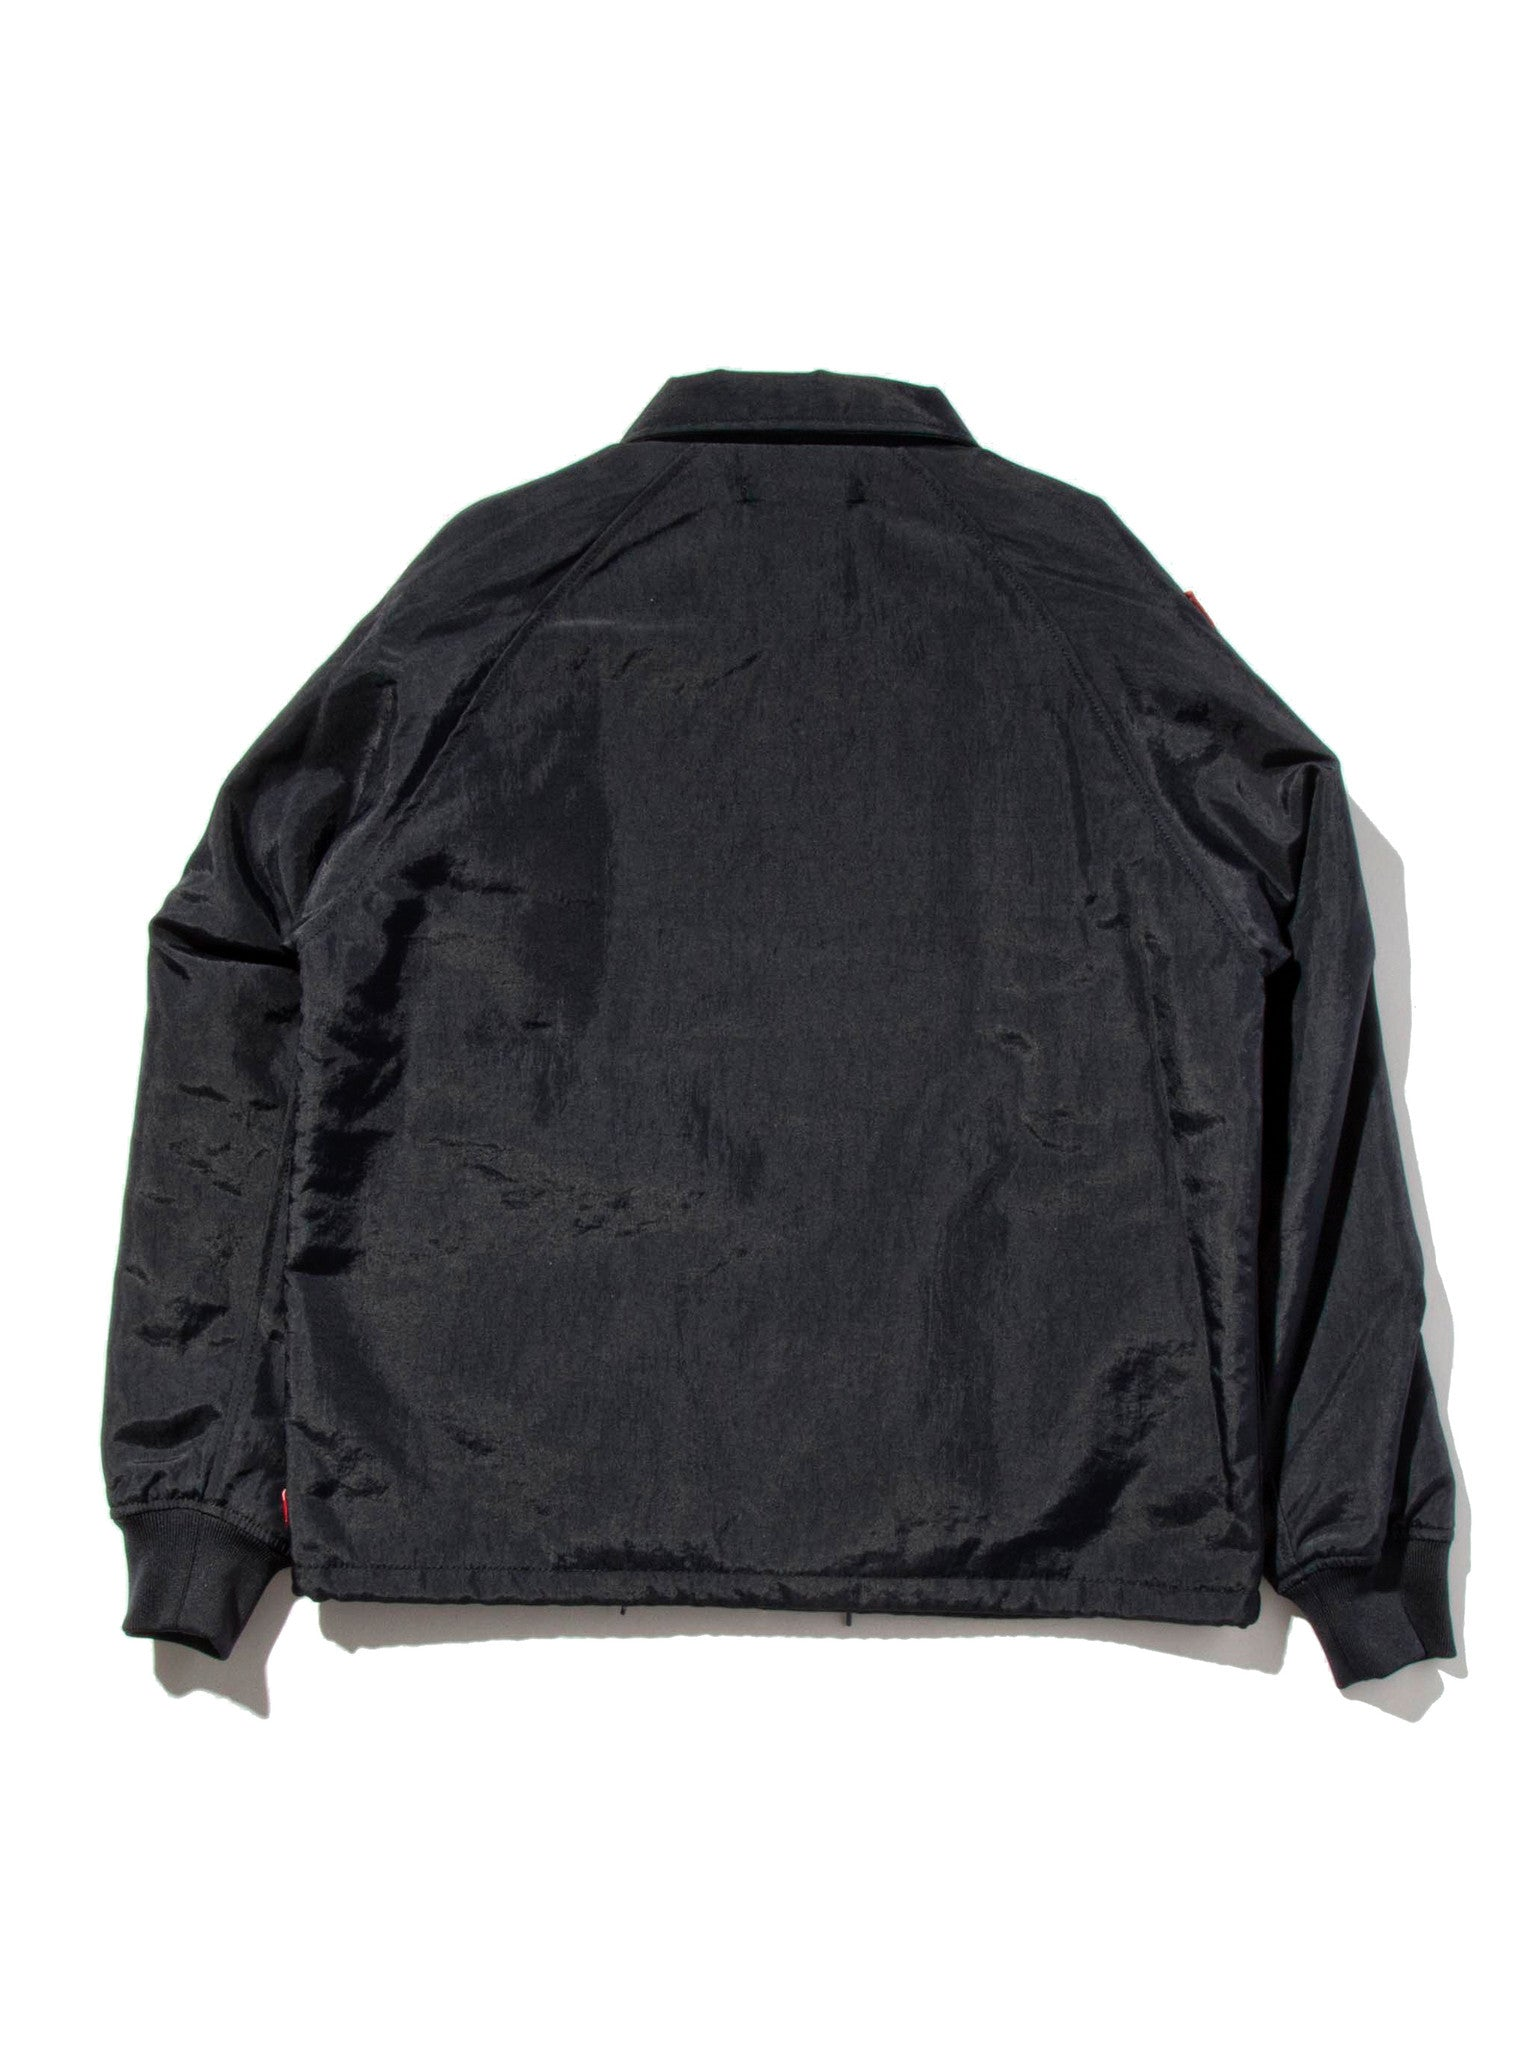 Navy Souvenir Jacket (Nylon) 6